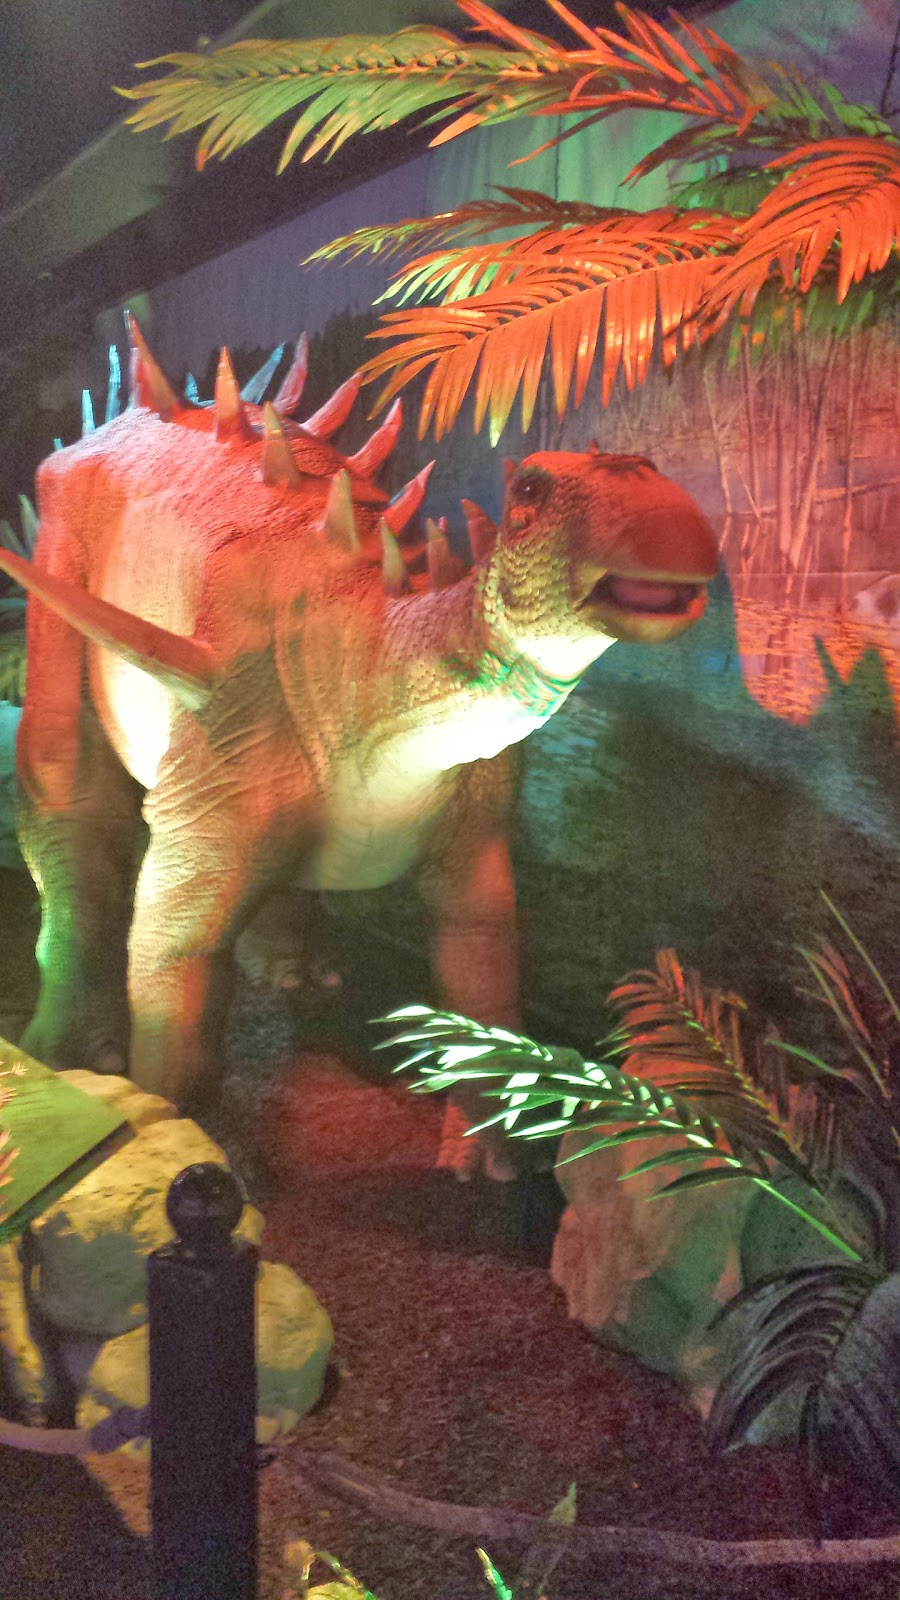 EXTREME DINOSAURS Exhibition​ in Atlanta Review via ProductReviewMom.com